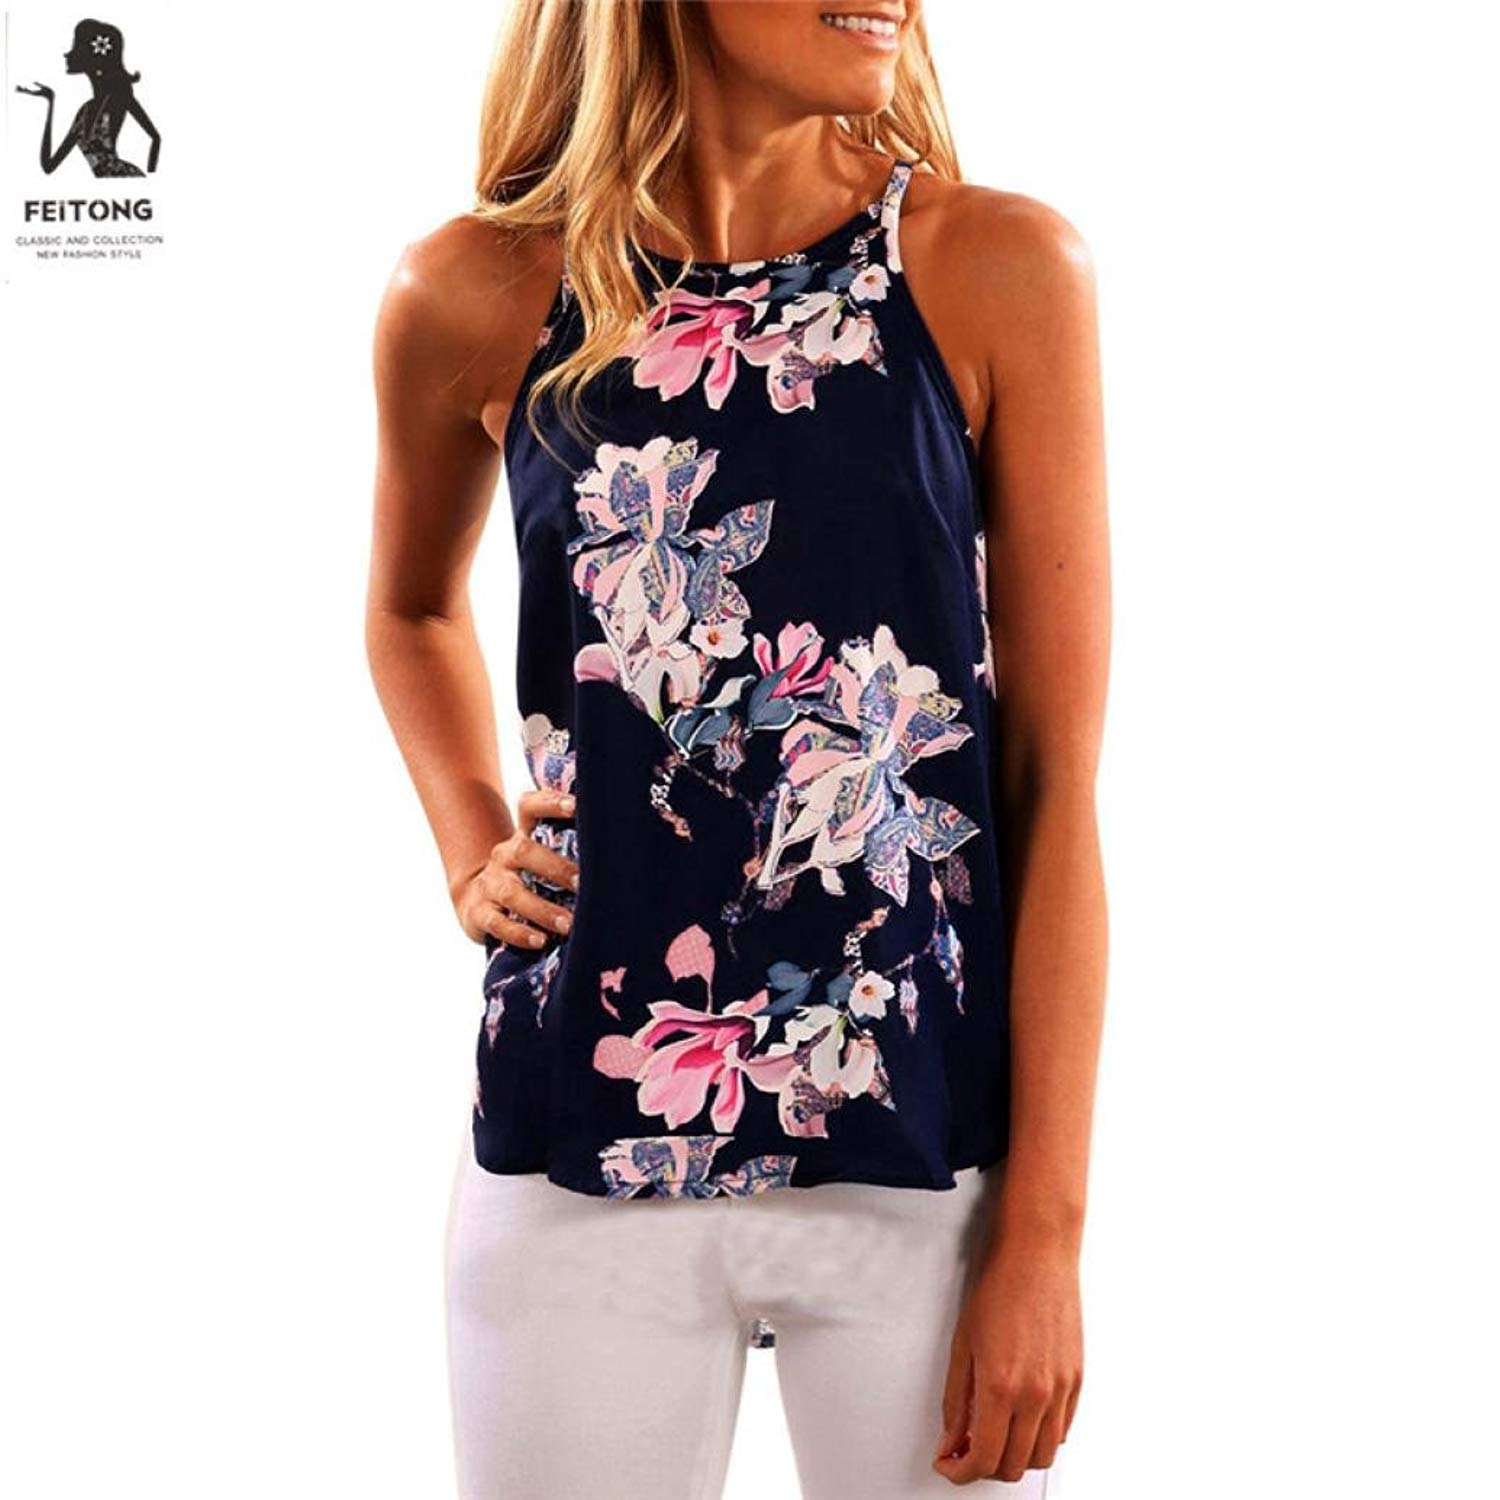 Dressin Workout Tank Tops For Women, Ladies Sexy Sleeveless Flower Print Shirt Blouse Tops Fashion Summer Vest